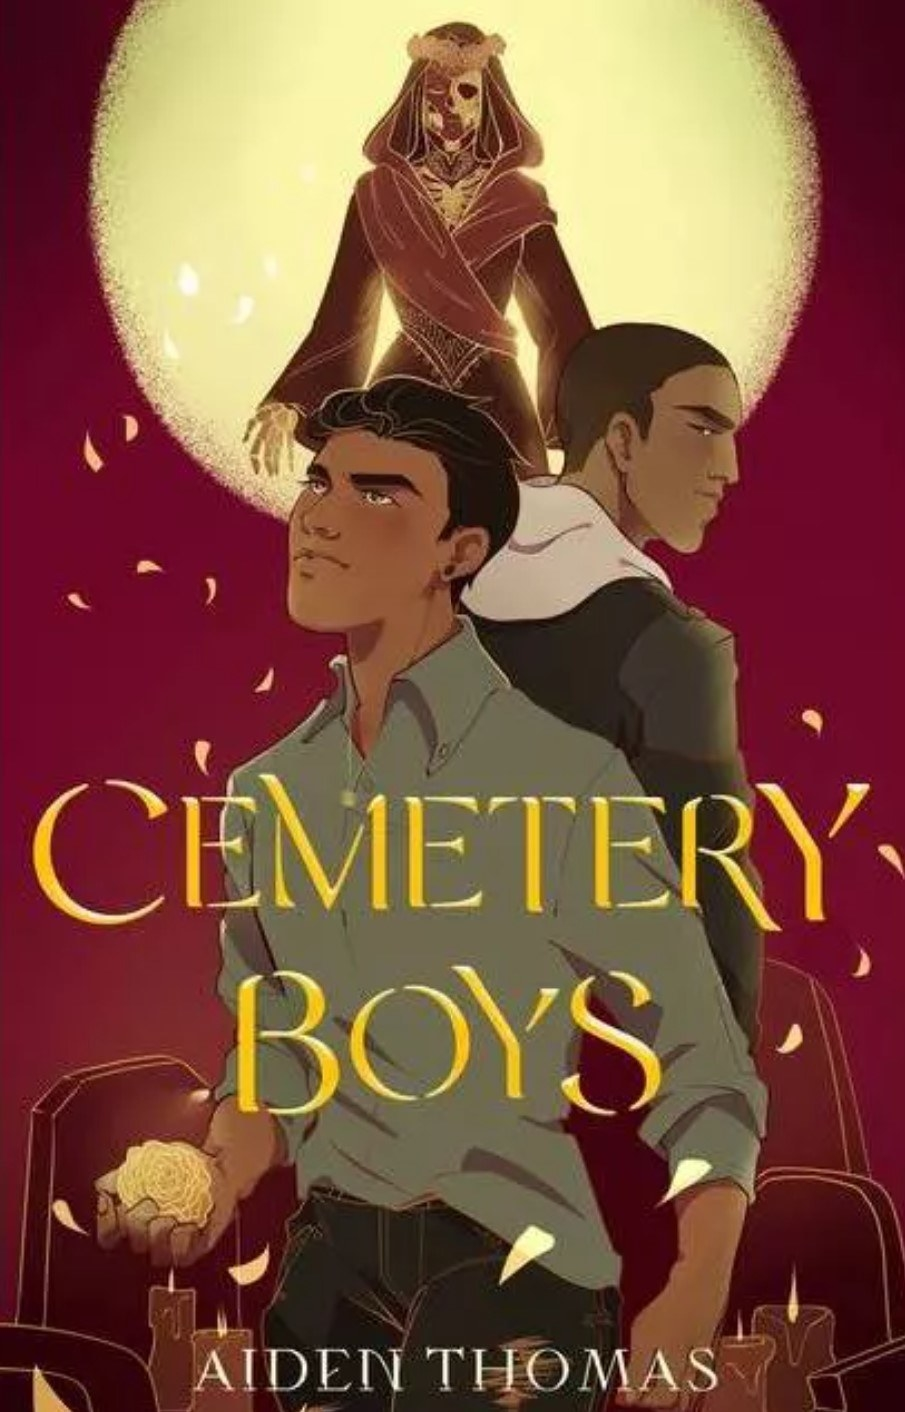 The cover of Cemetery Boys by Aiden Thomas